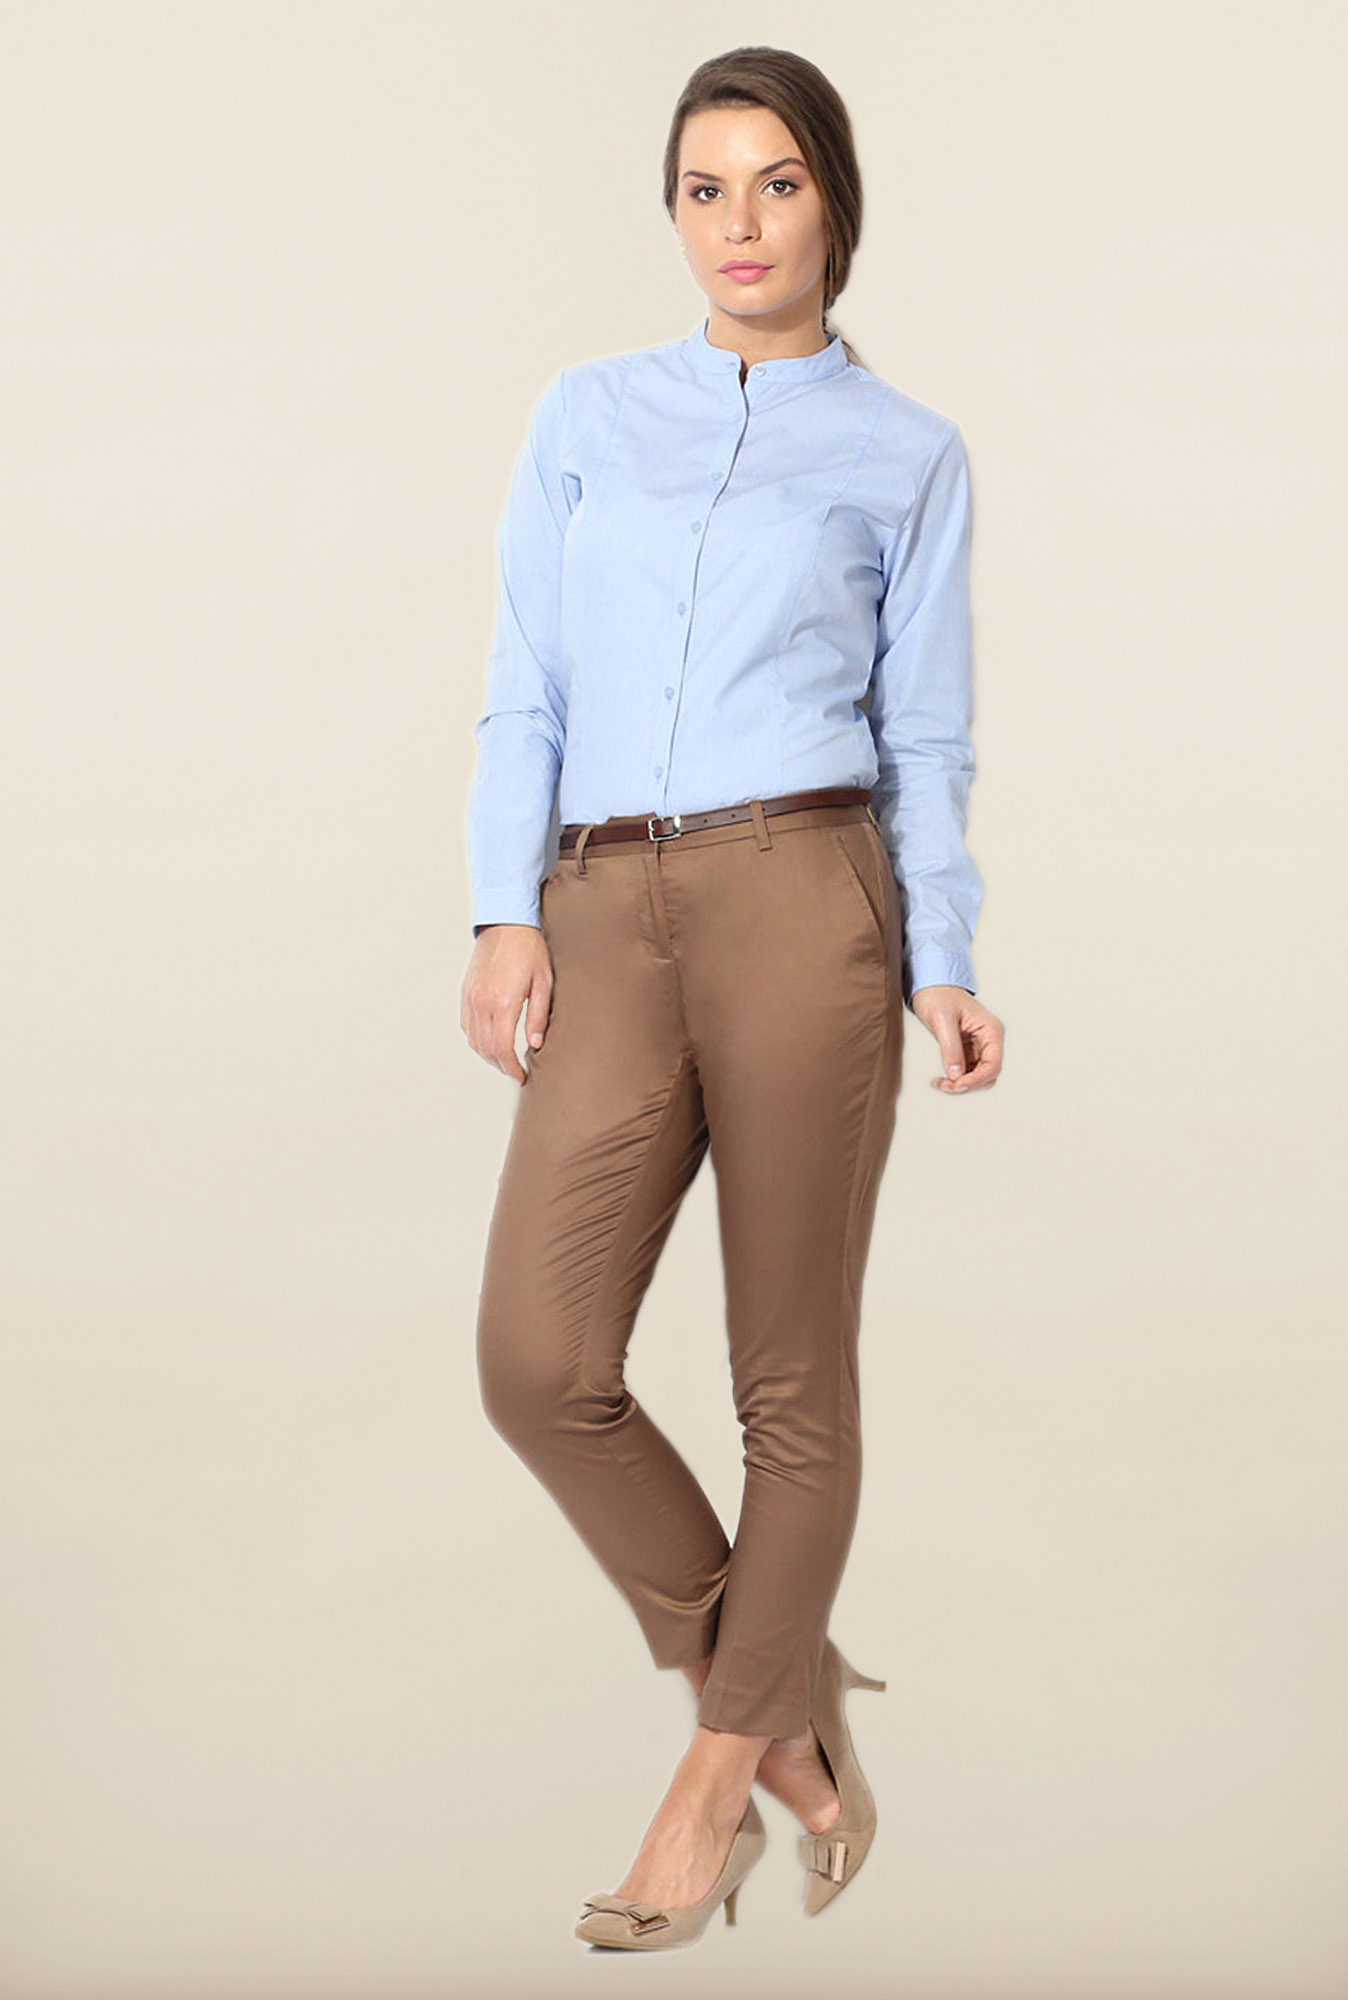 Allen Solly Blue Cotton Formal Shirt